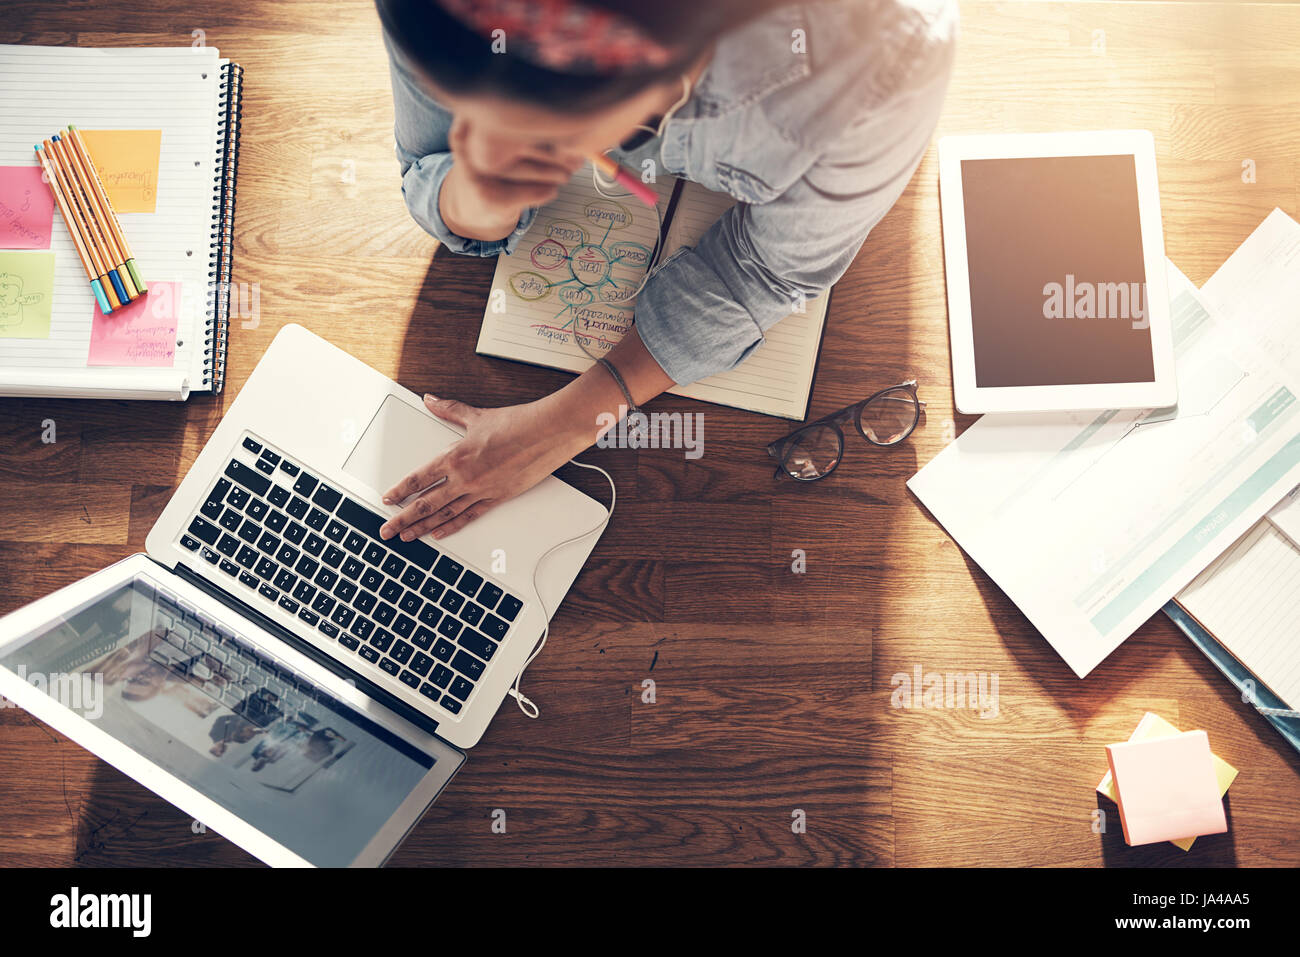 From above entrepreneur woman browsing laptop and holding pencil while thinking at laptop in office. - Stock Image